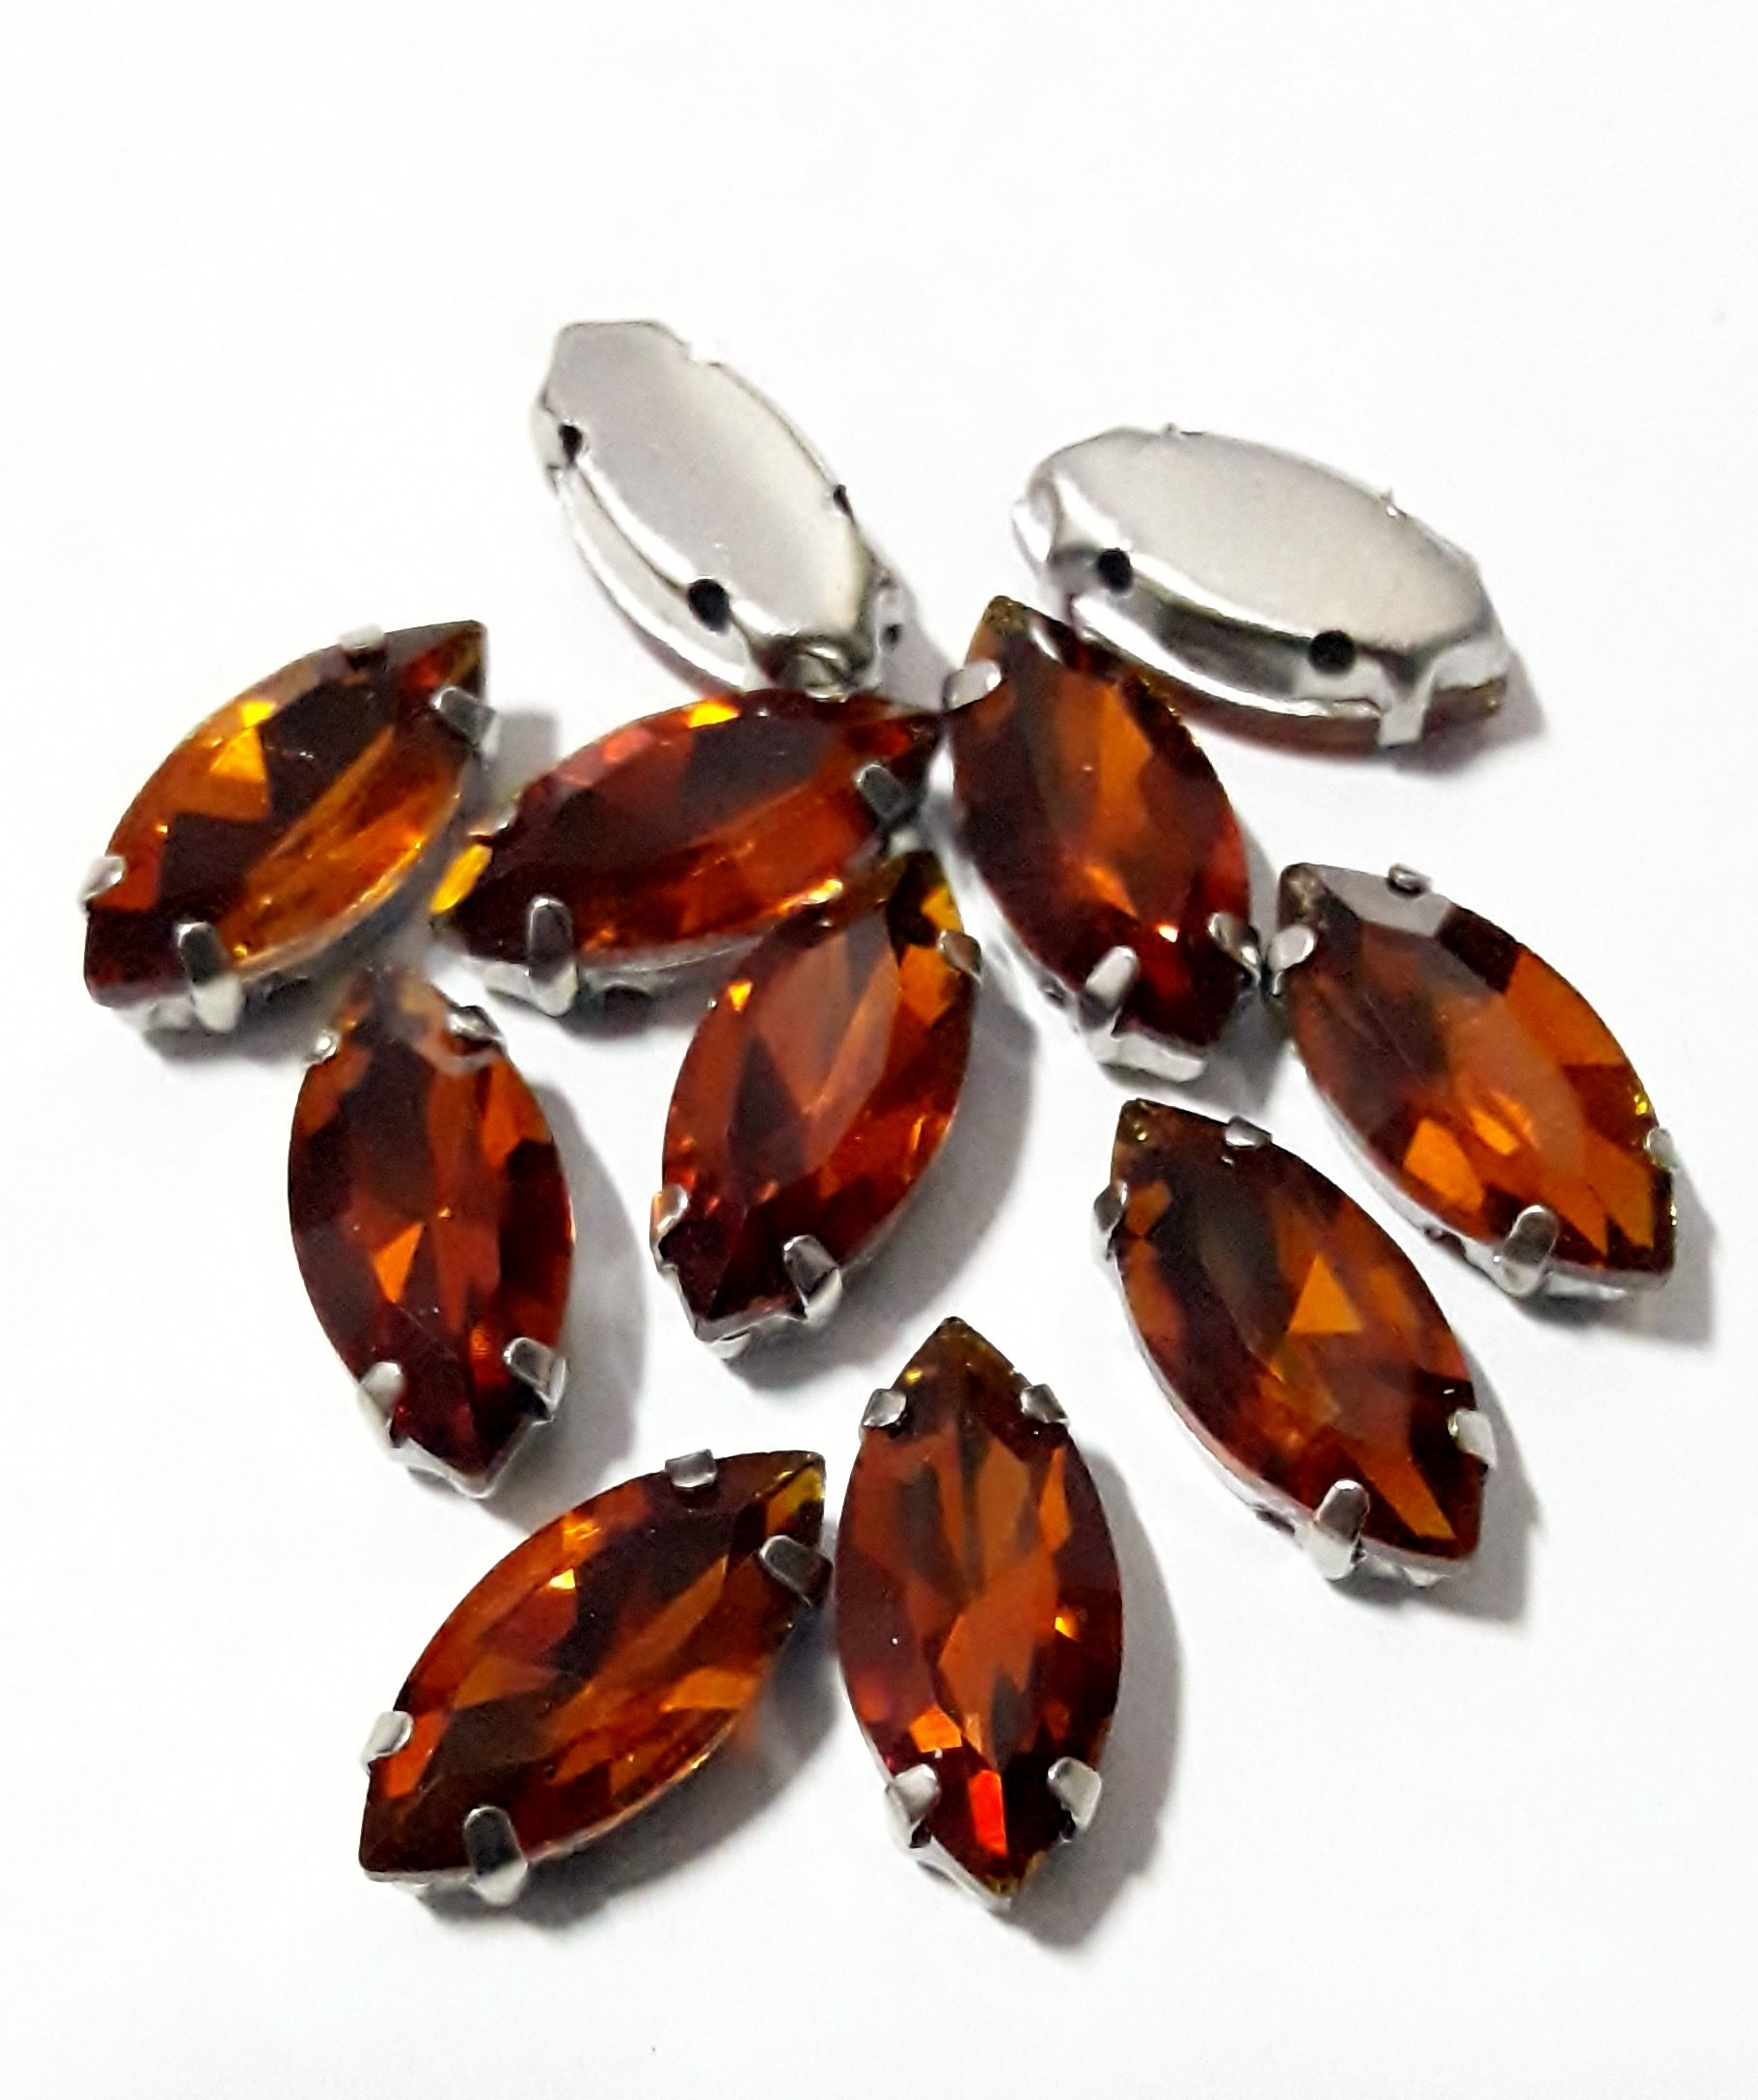 GLASS BEADS - SMOKED TOPAZ HORSE EYE (H12)